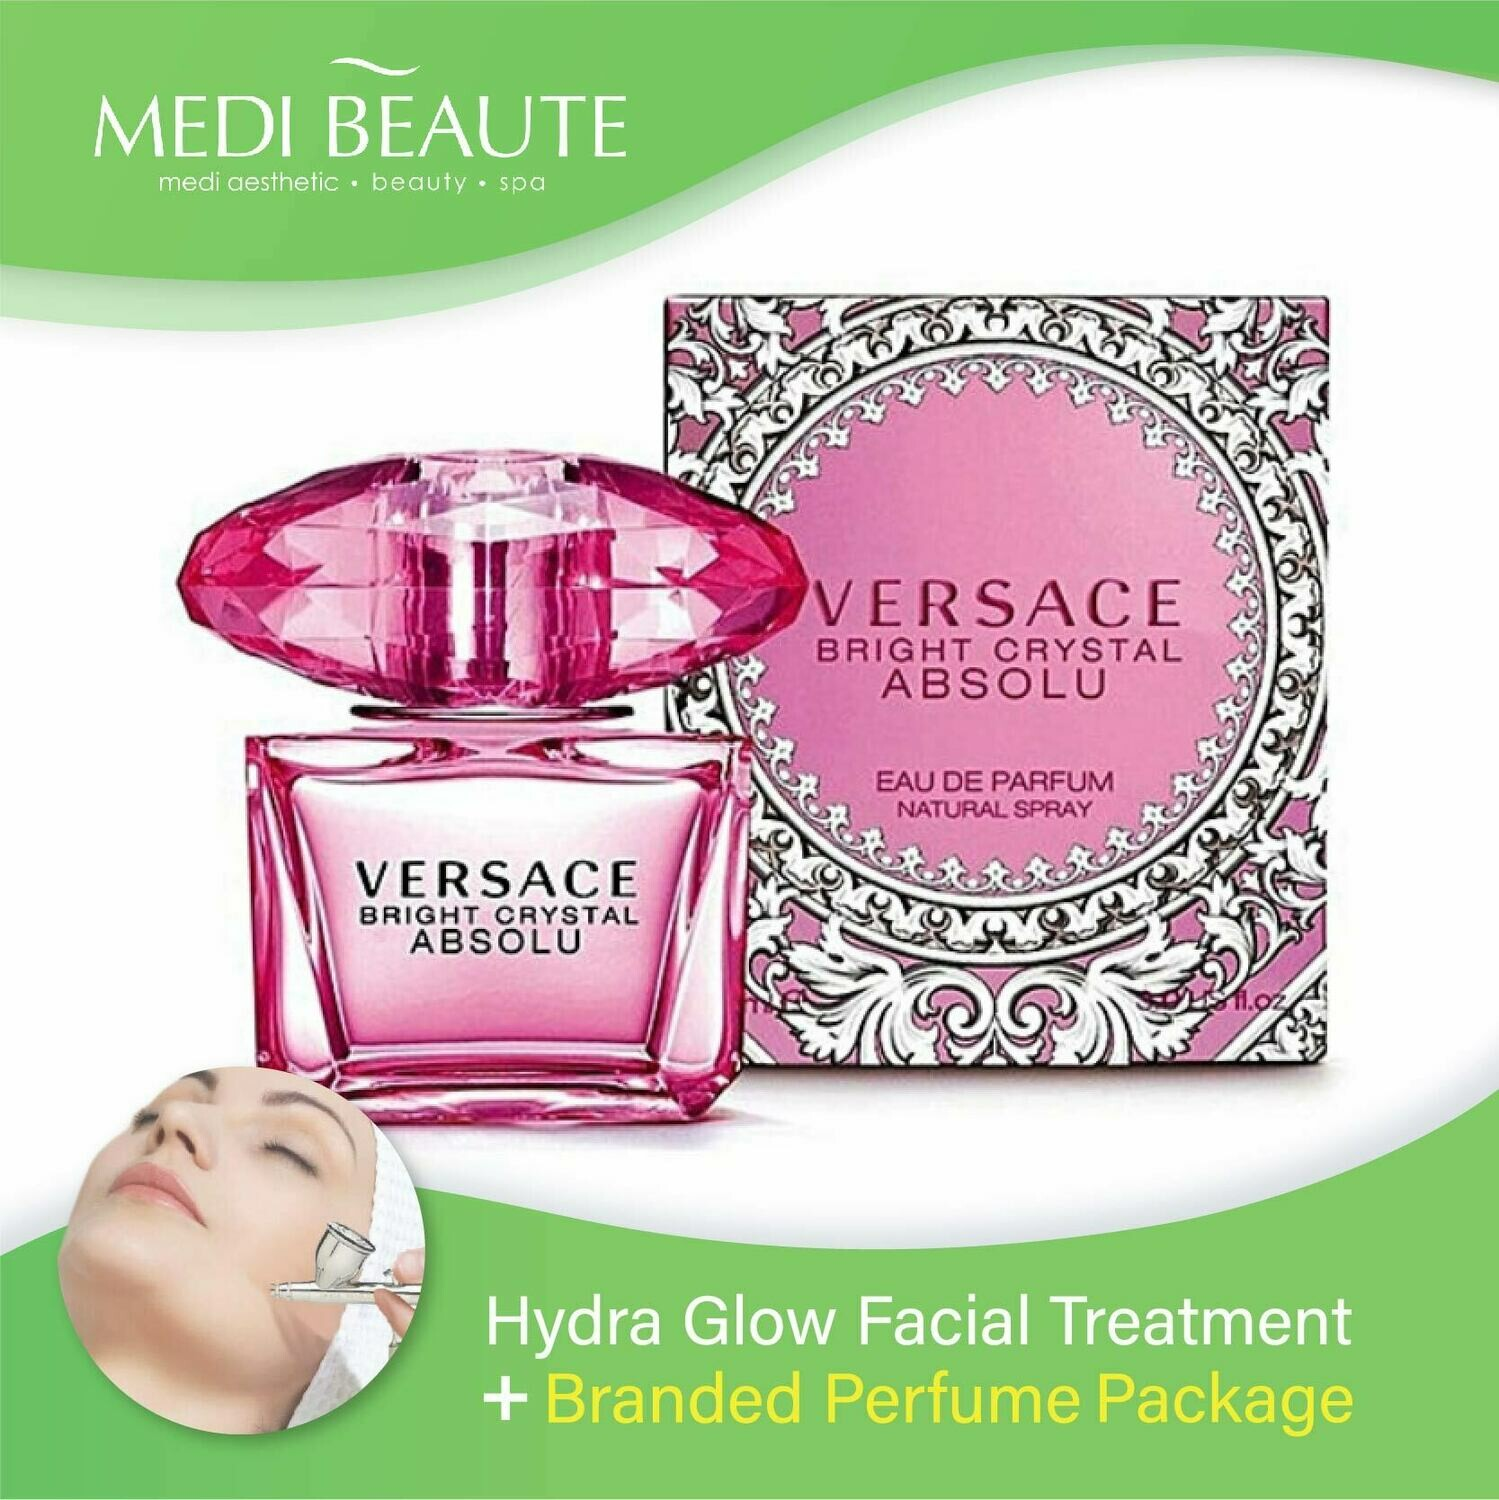 Medi Beaute Hydra Glow Facial + Branded Perfume ( Versace Bright Crystal Absolu EDP Lady 90ml ) Package